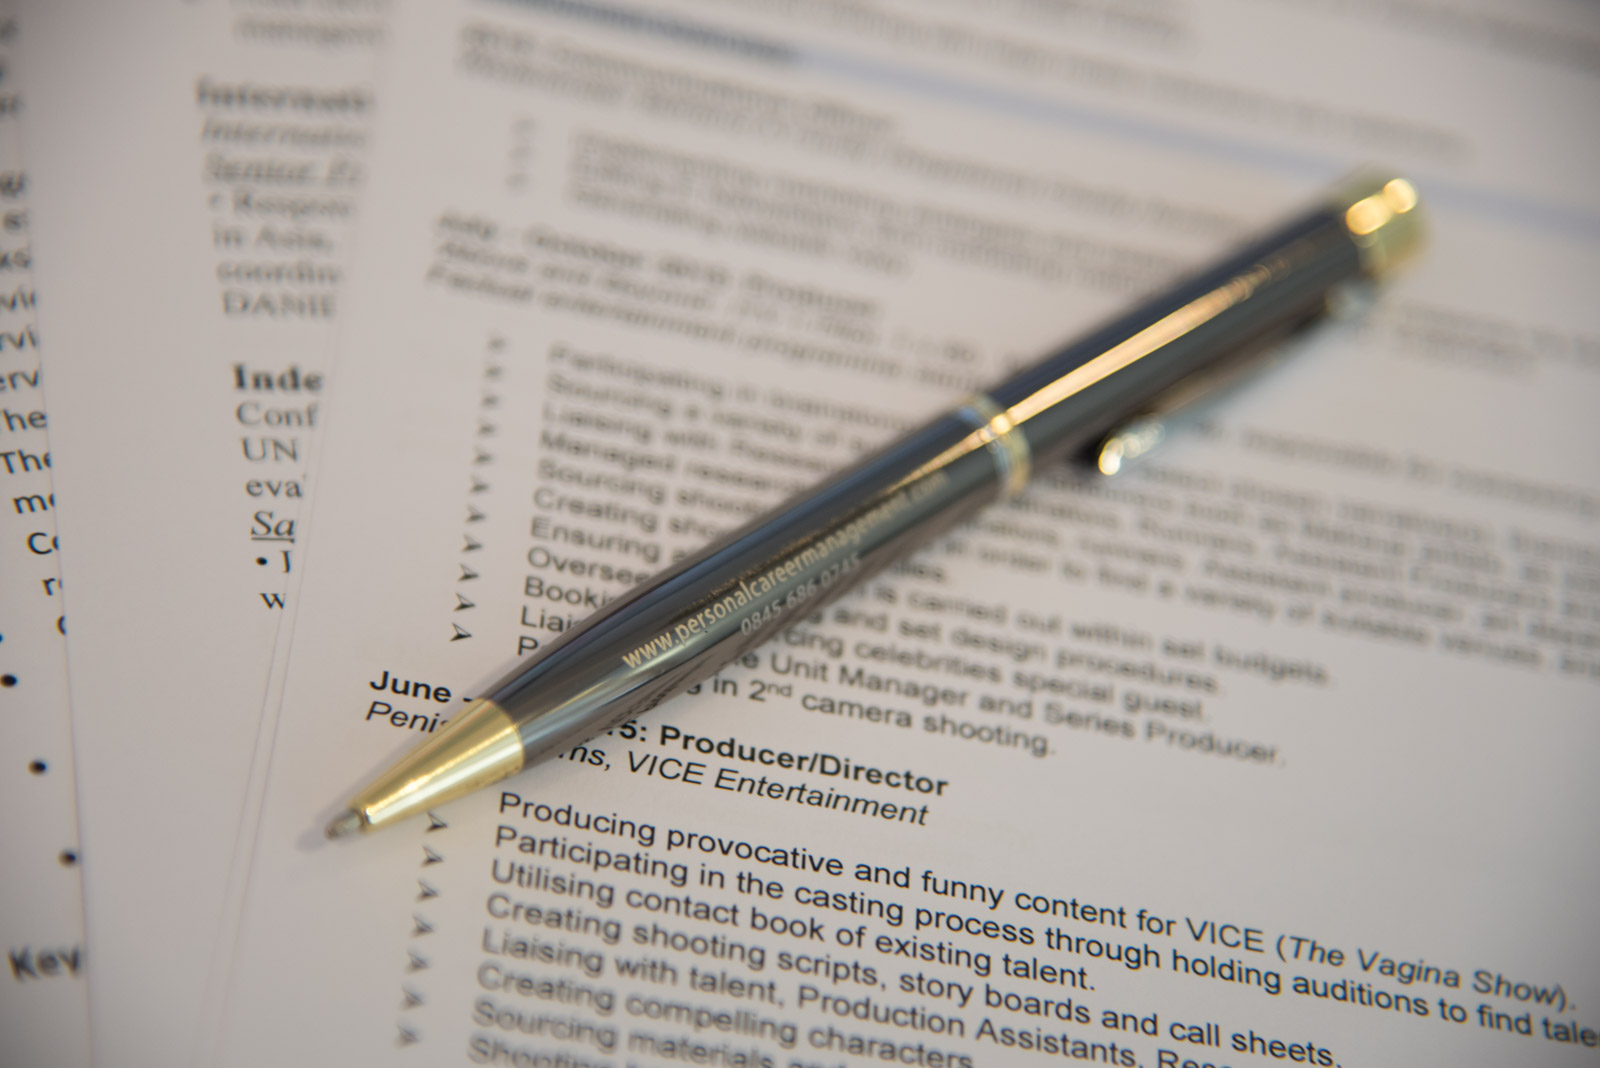 Guardian: What to include in your CV Personal Statement